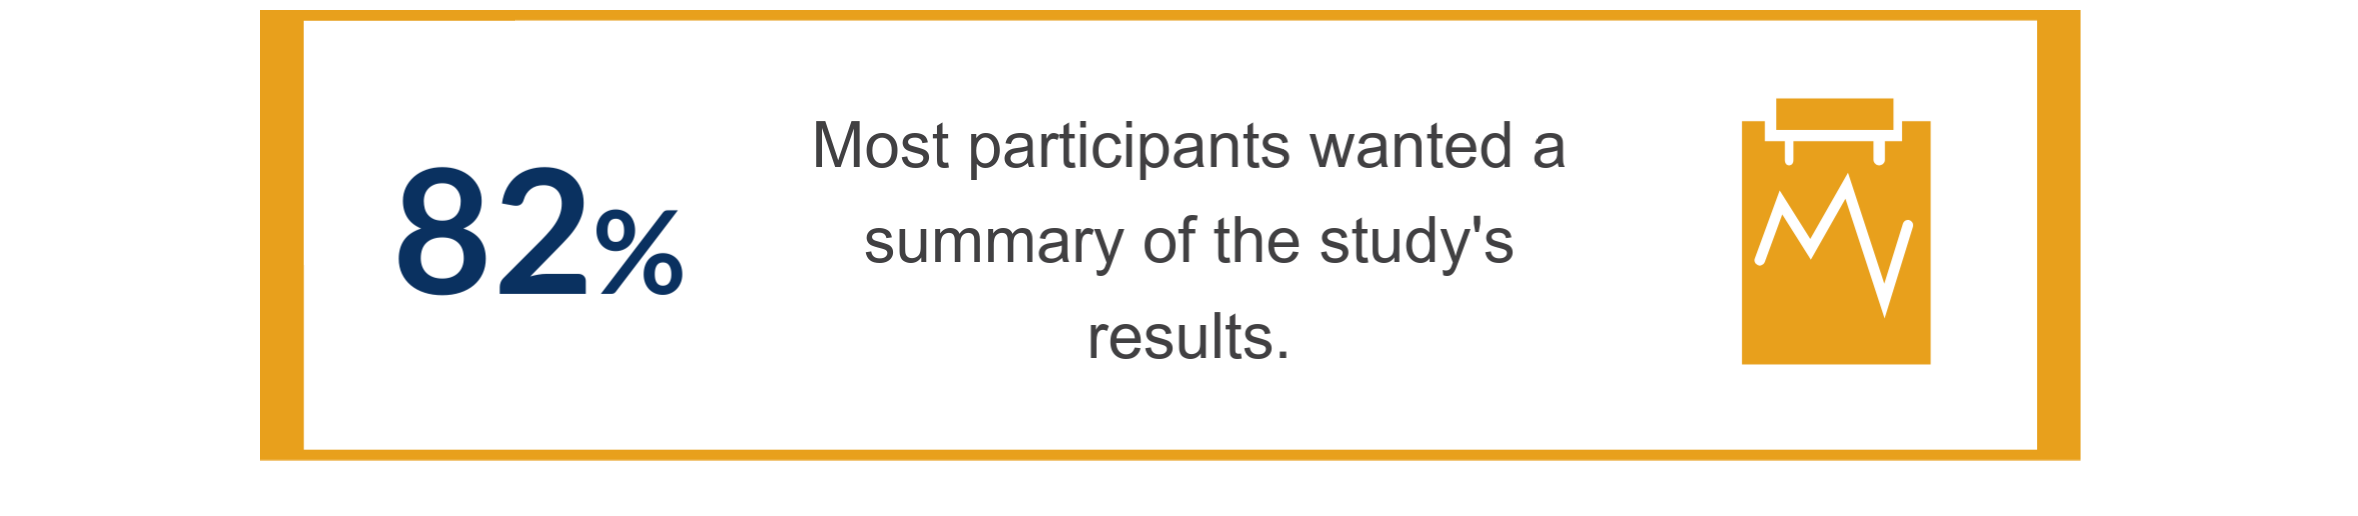 82%, or most participants, wanted a summary of the study's results.